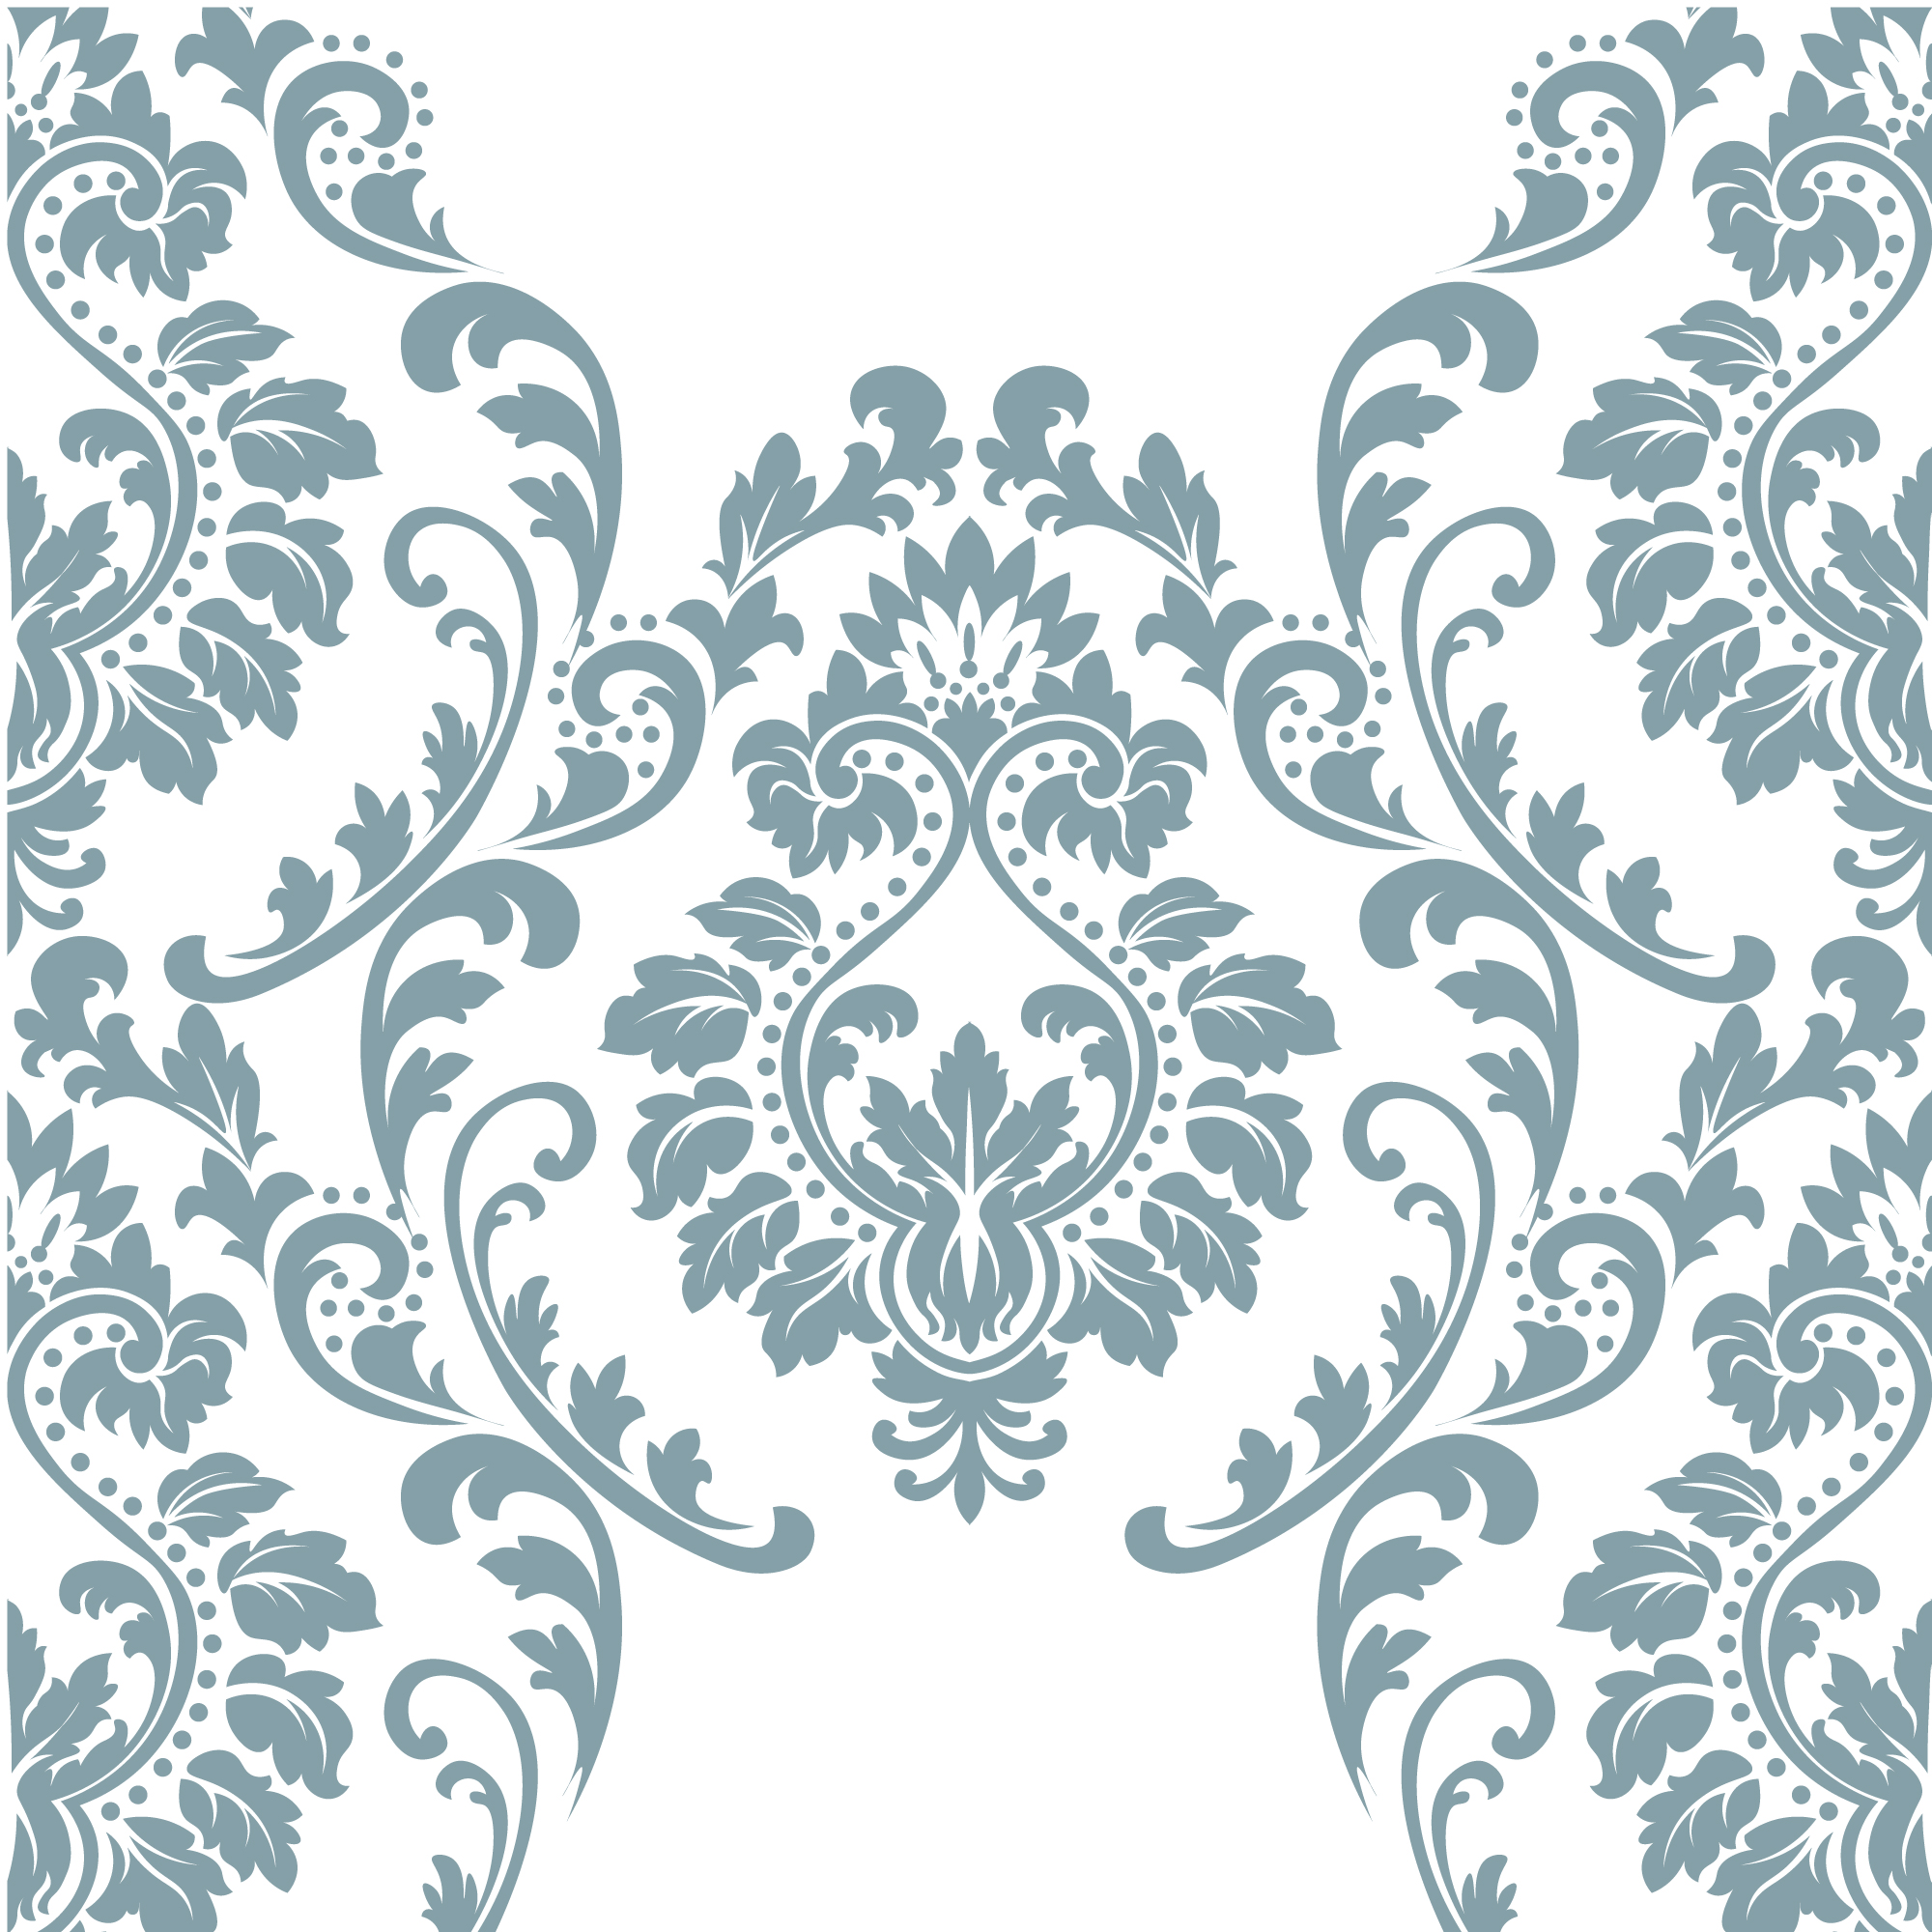 Blue and white ornamental pattern background